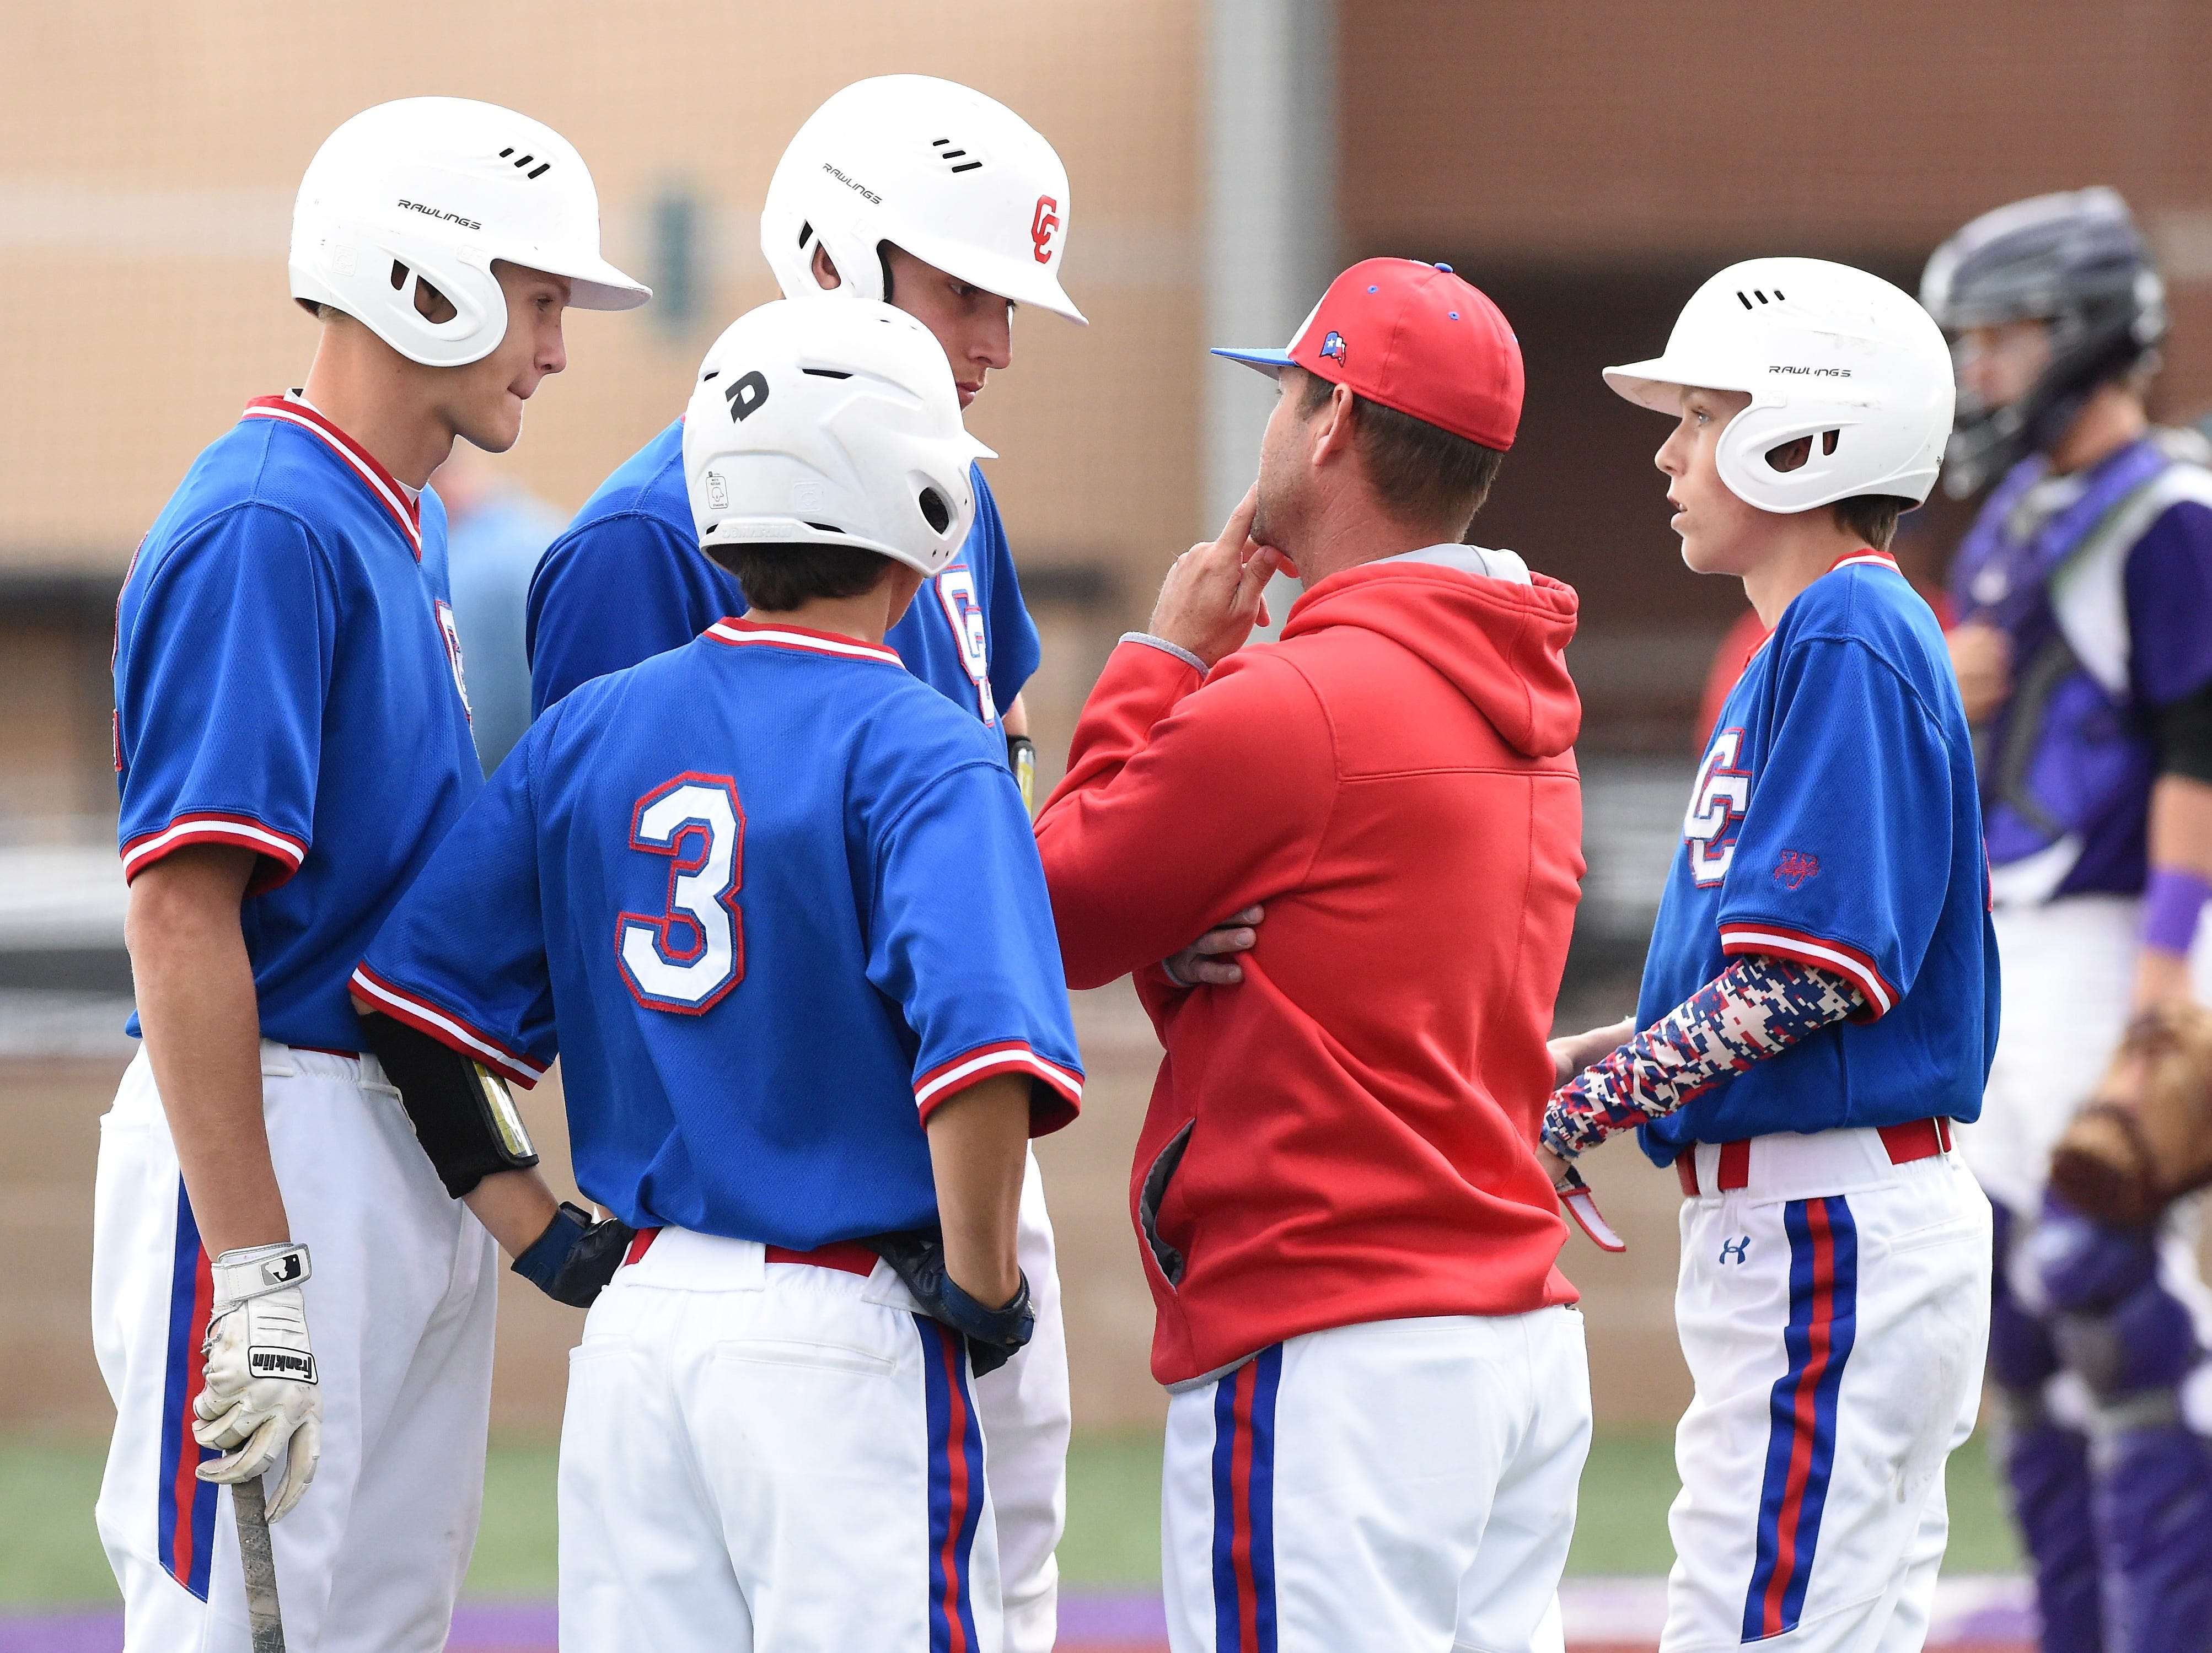 Cooper coach Cody Salyers talks to his players during a Wylie pitching change at Bulldog Field on Friday, April 12, 2019. The Cougars fell 4-3.